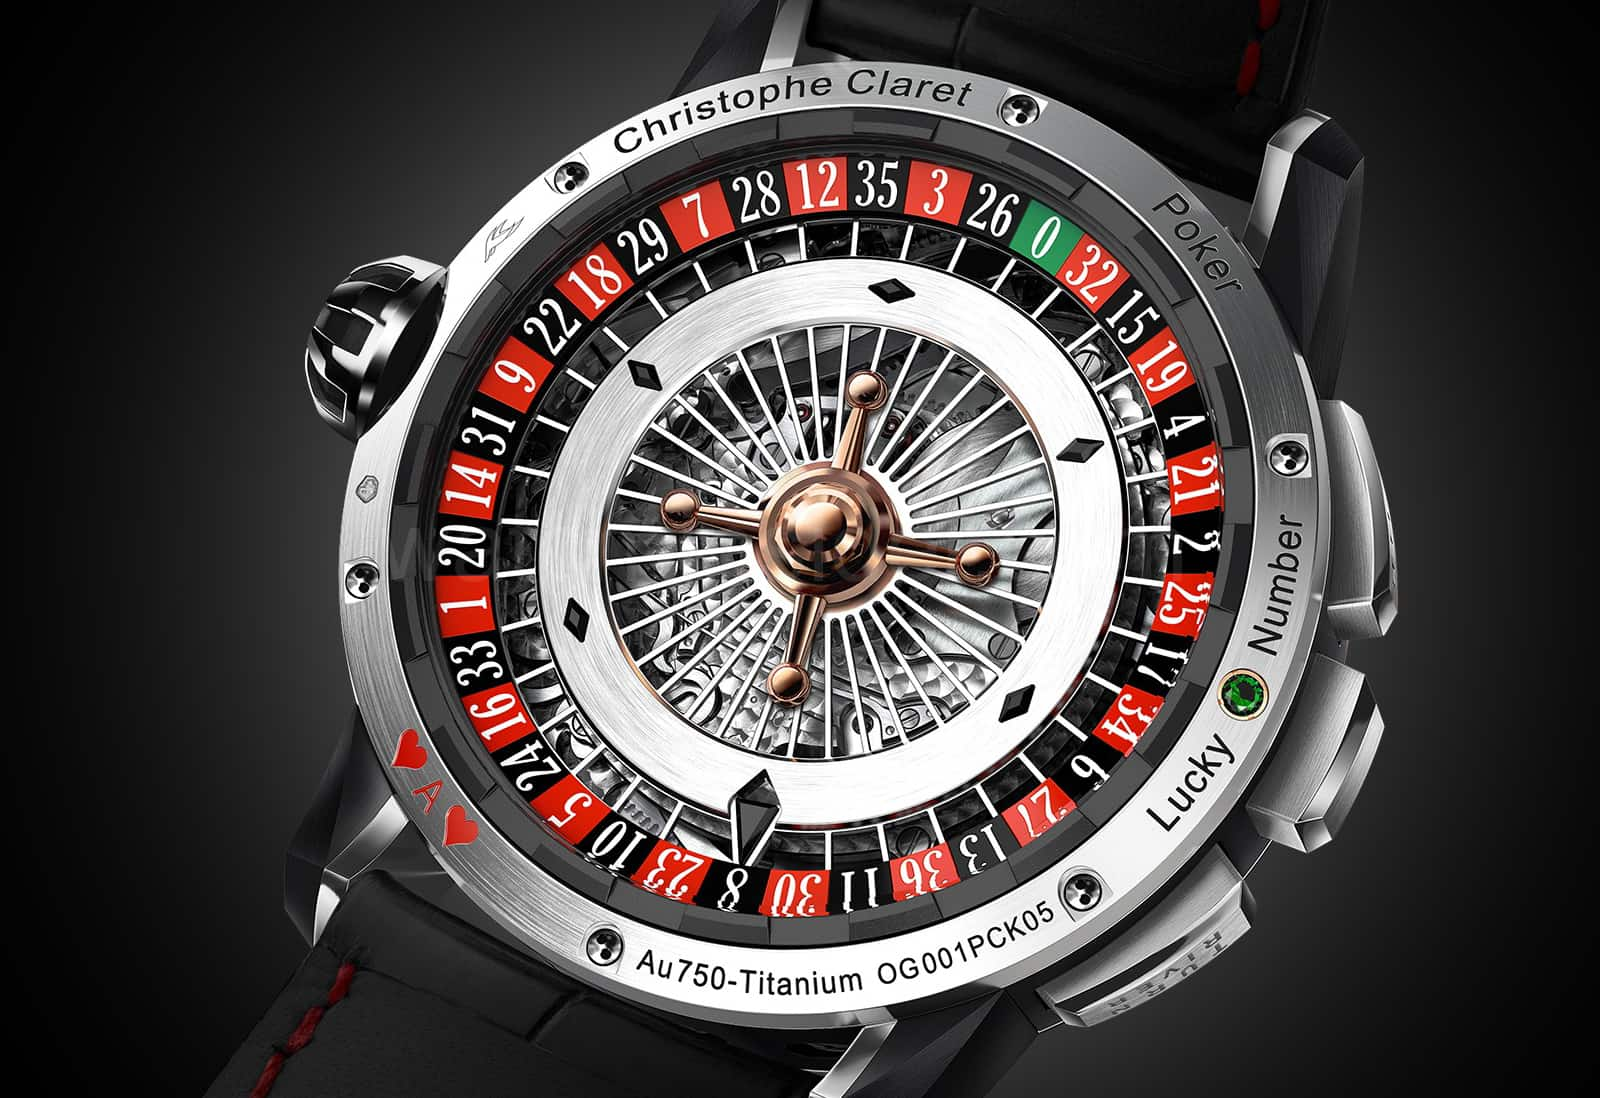 Christophe Claret's Poker Watch